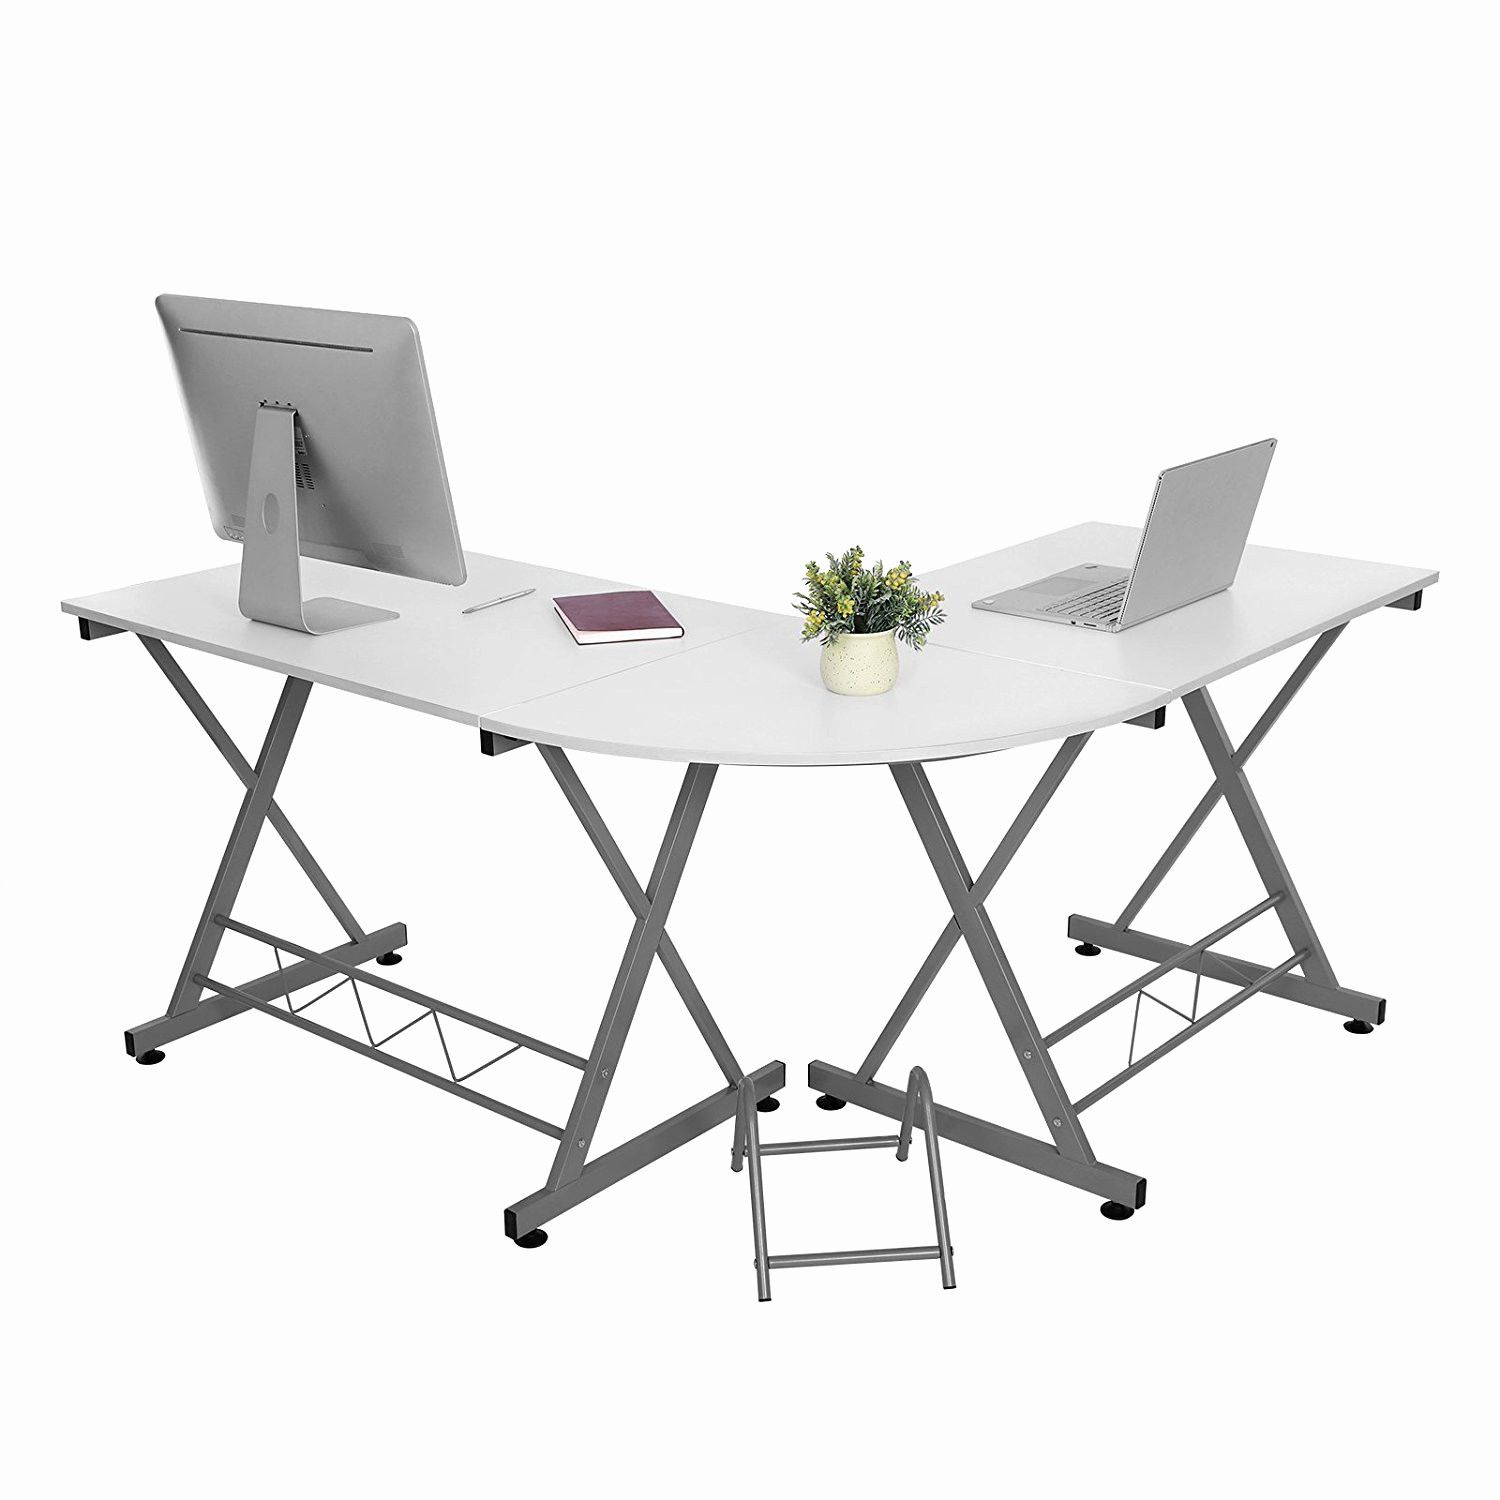 Elegant Table De Massage Le Bon Coin Housses De Canapes Ikea Housse Canape Angle Canape D Angle Beige